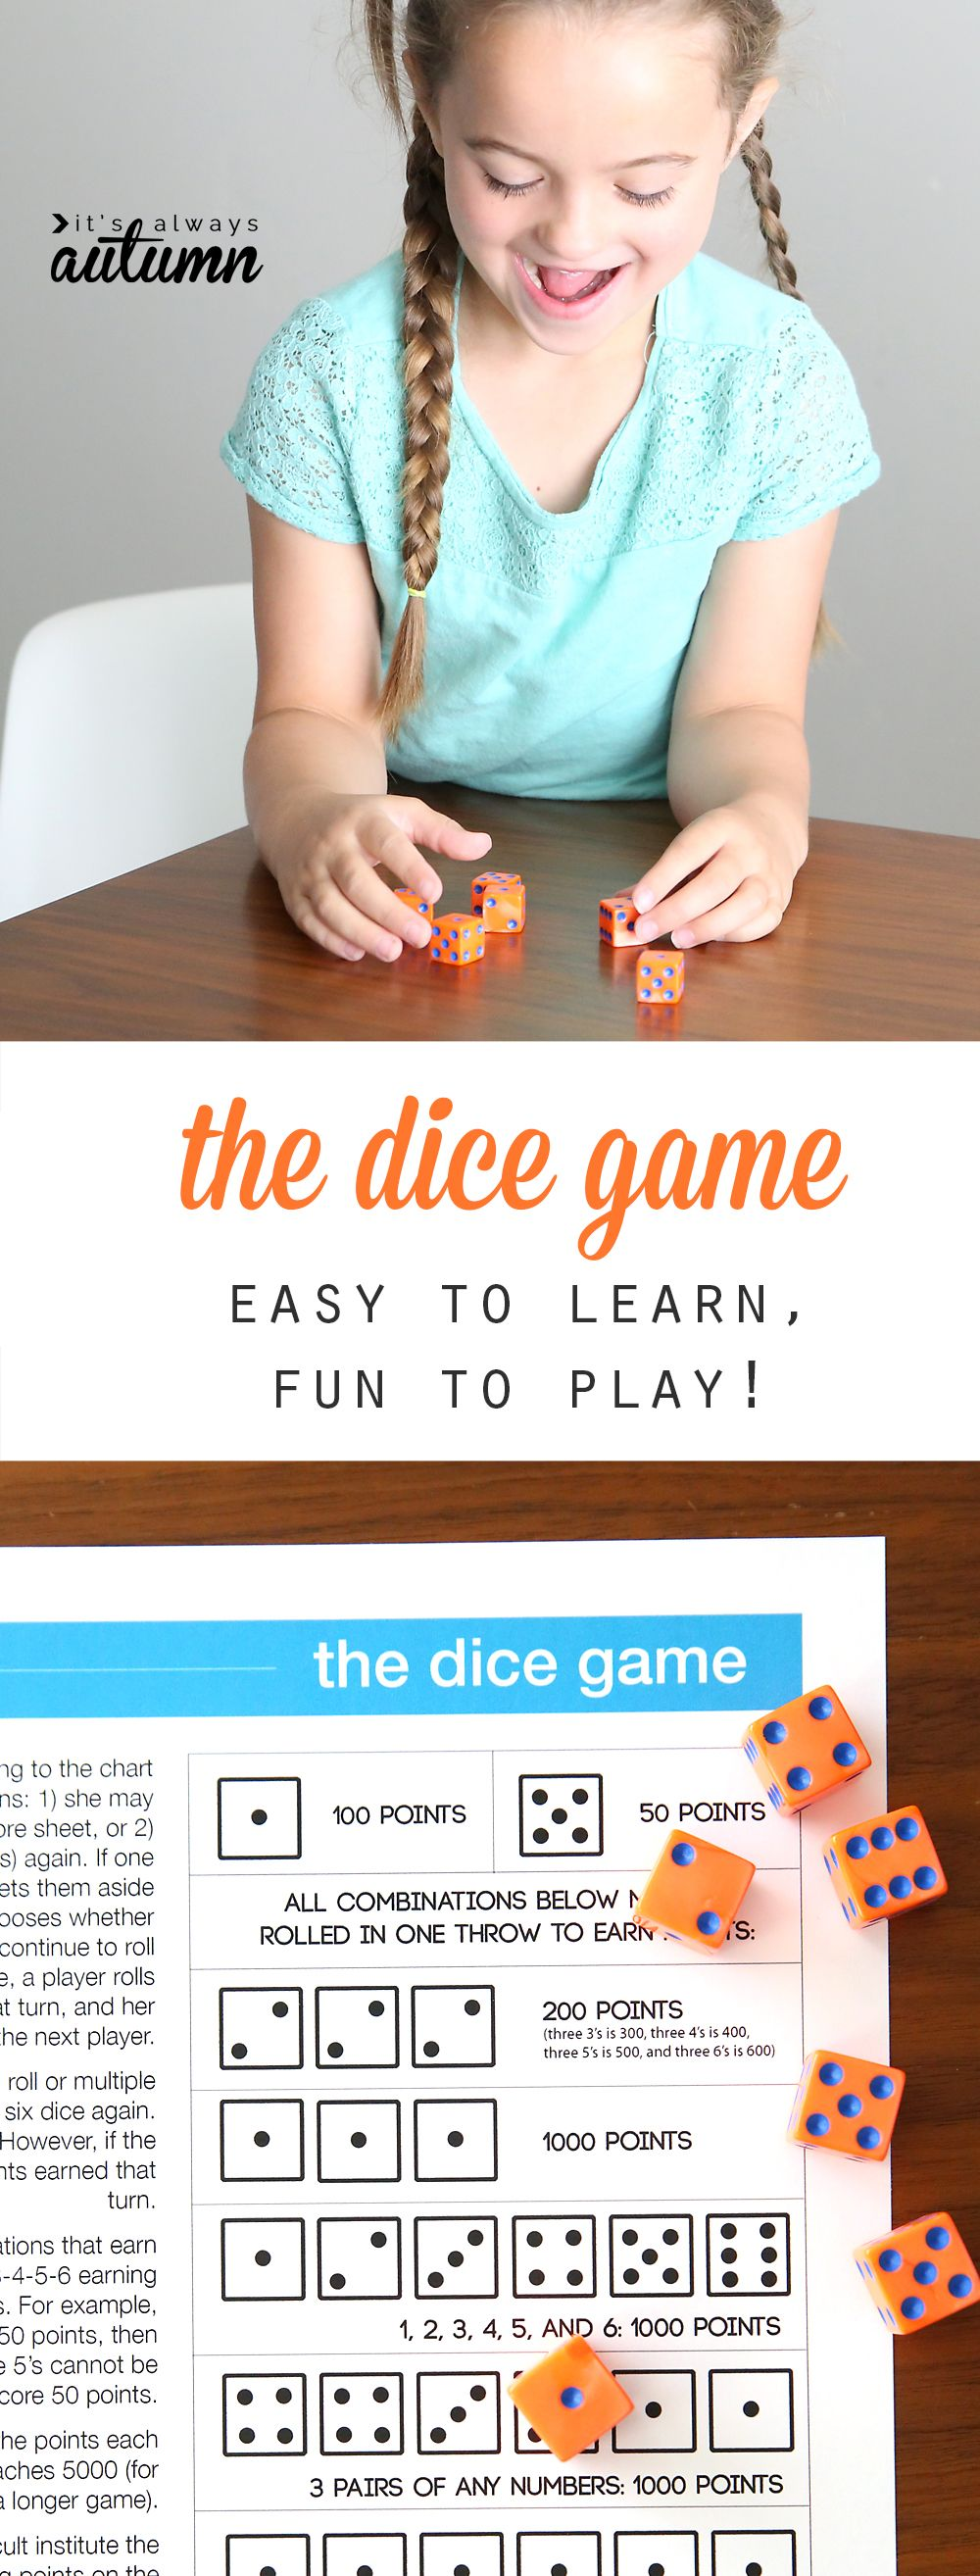 Oriasi buborekok 87 - The Dice Game Is Fun And Easy To Play For Kids And Adults It S A